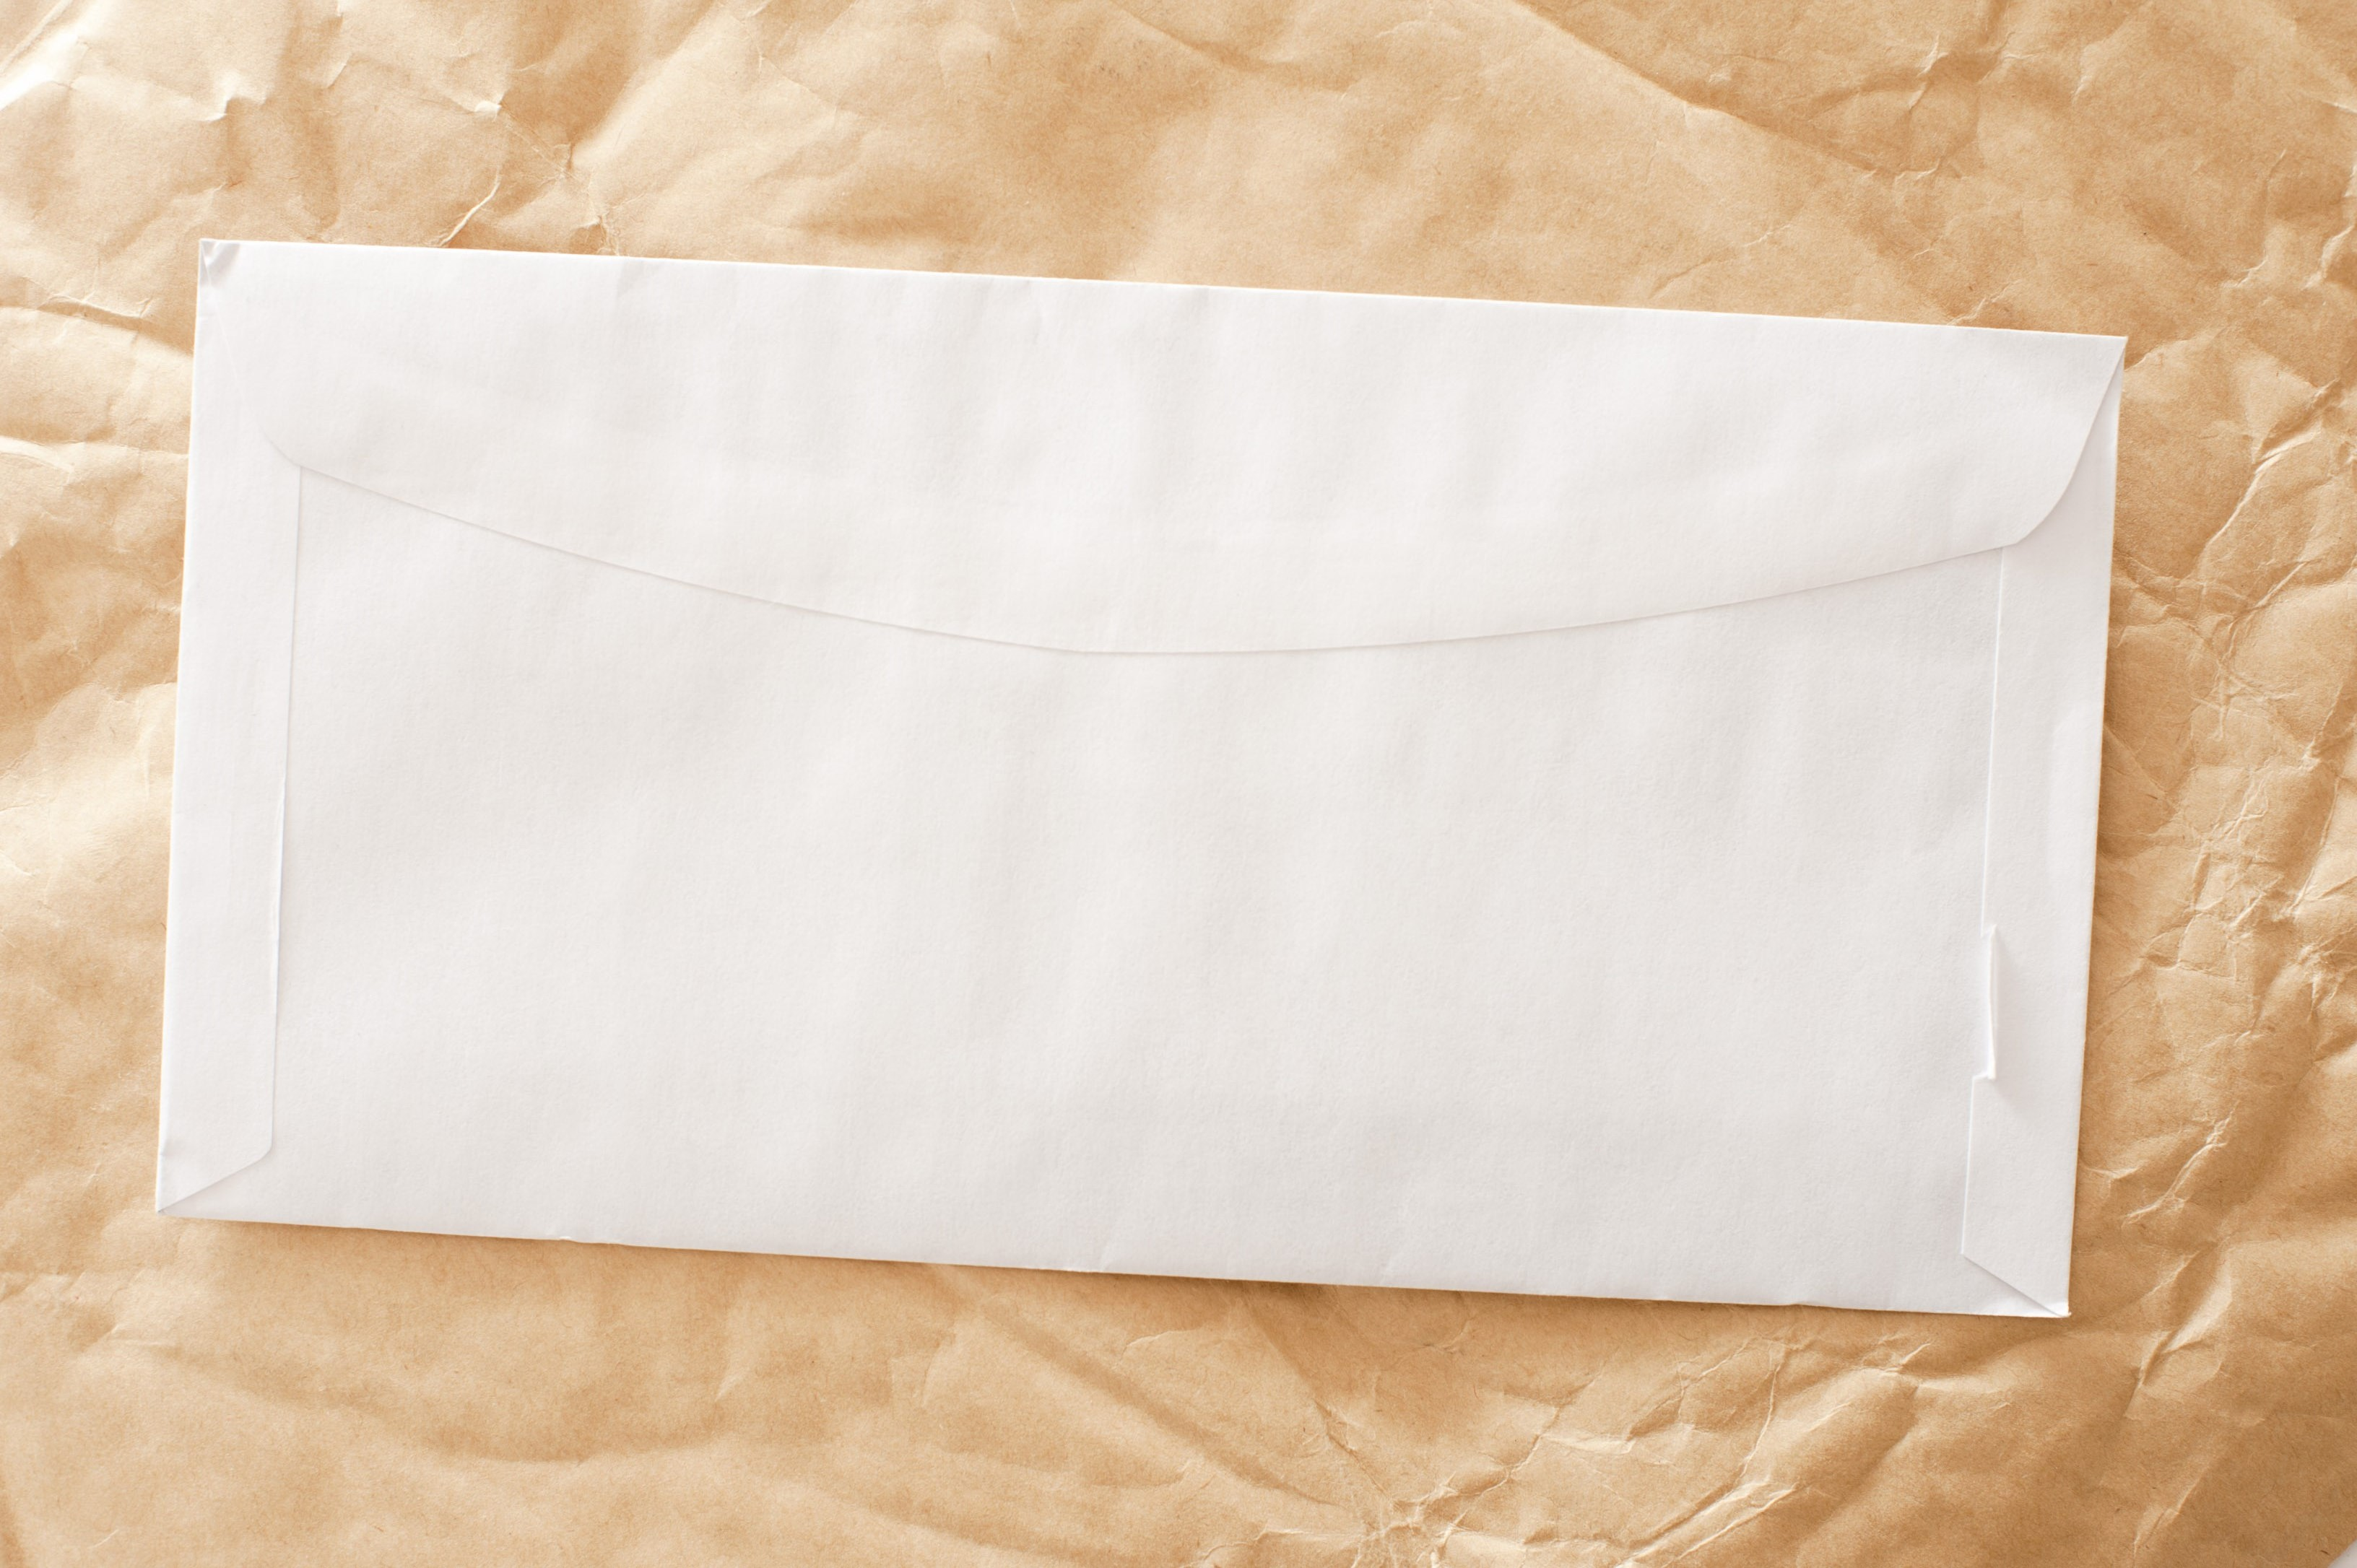 contrasting clean white envelope and a crumbled brown paper background